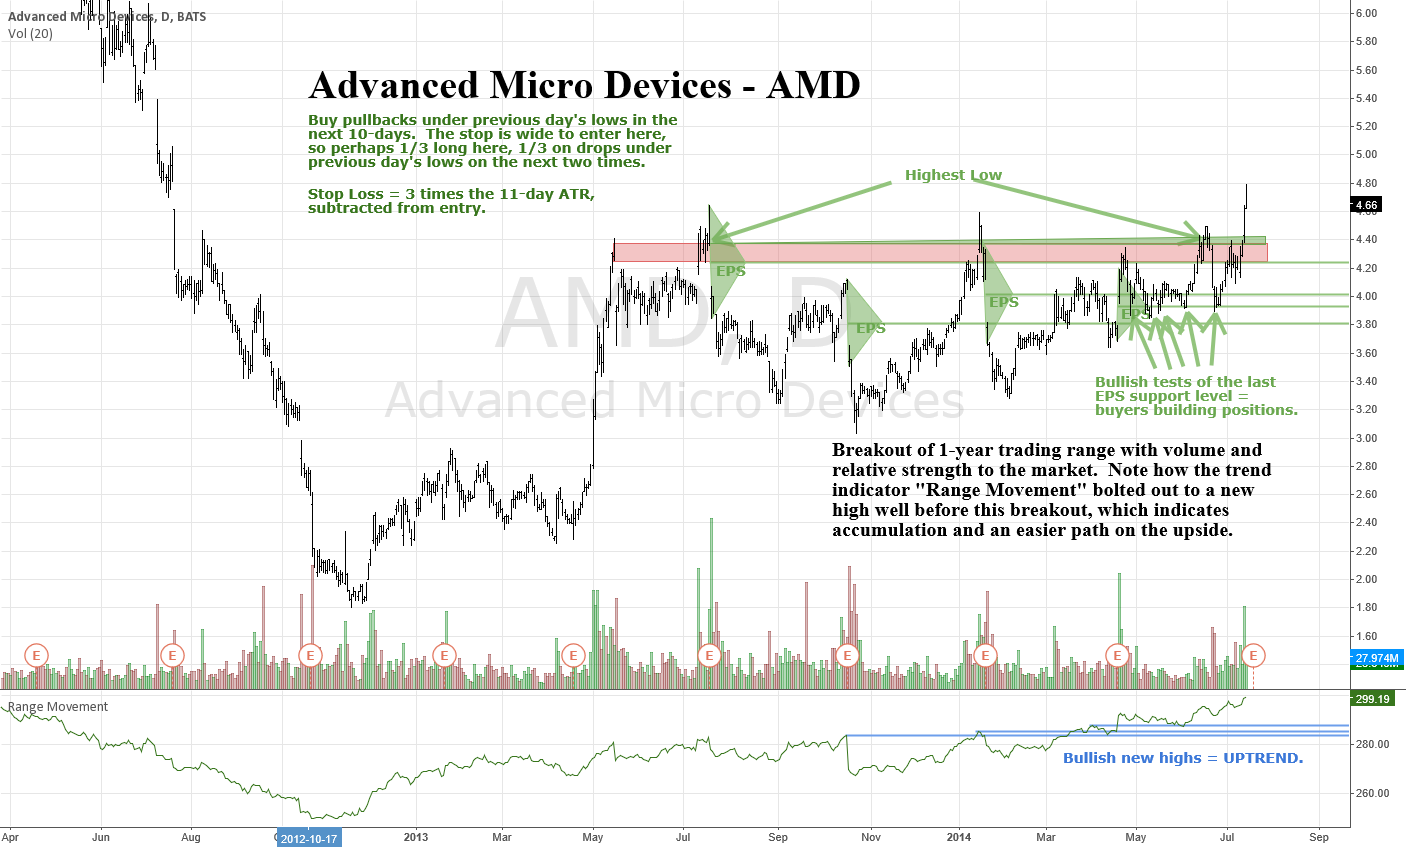 Advanced Micro Devices - AMD - Daily - Breakout of Range